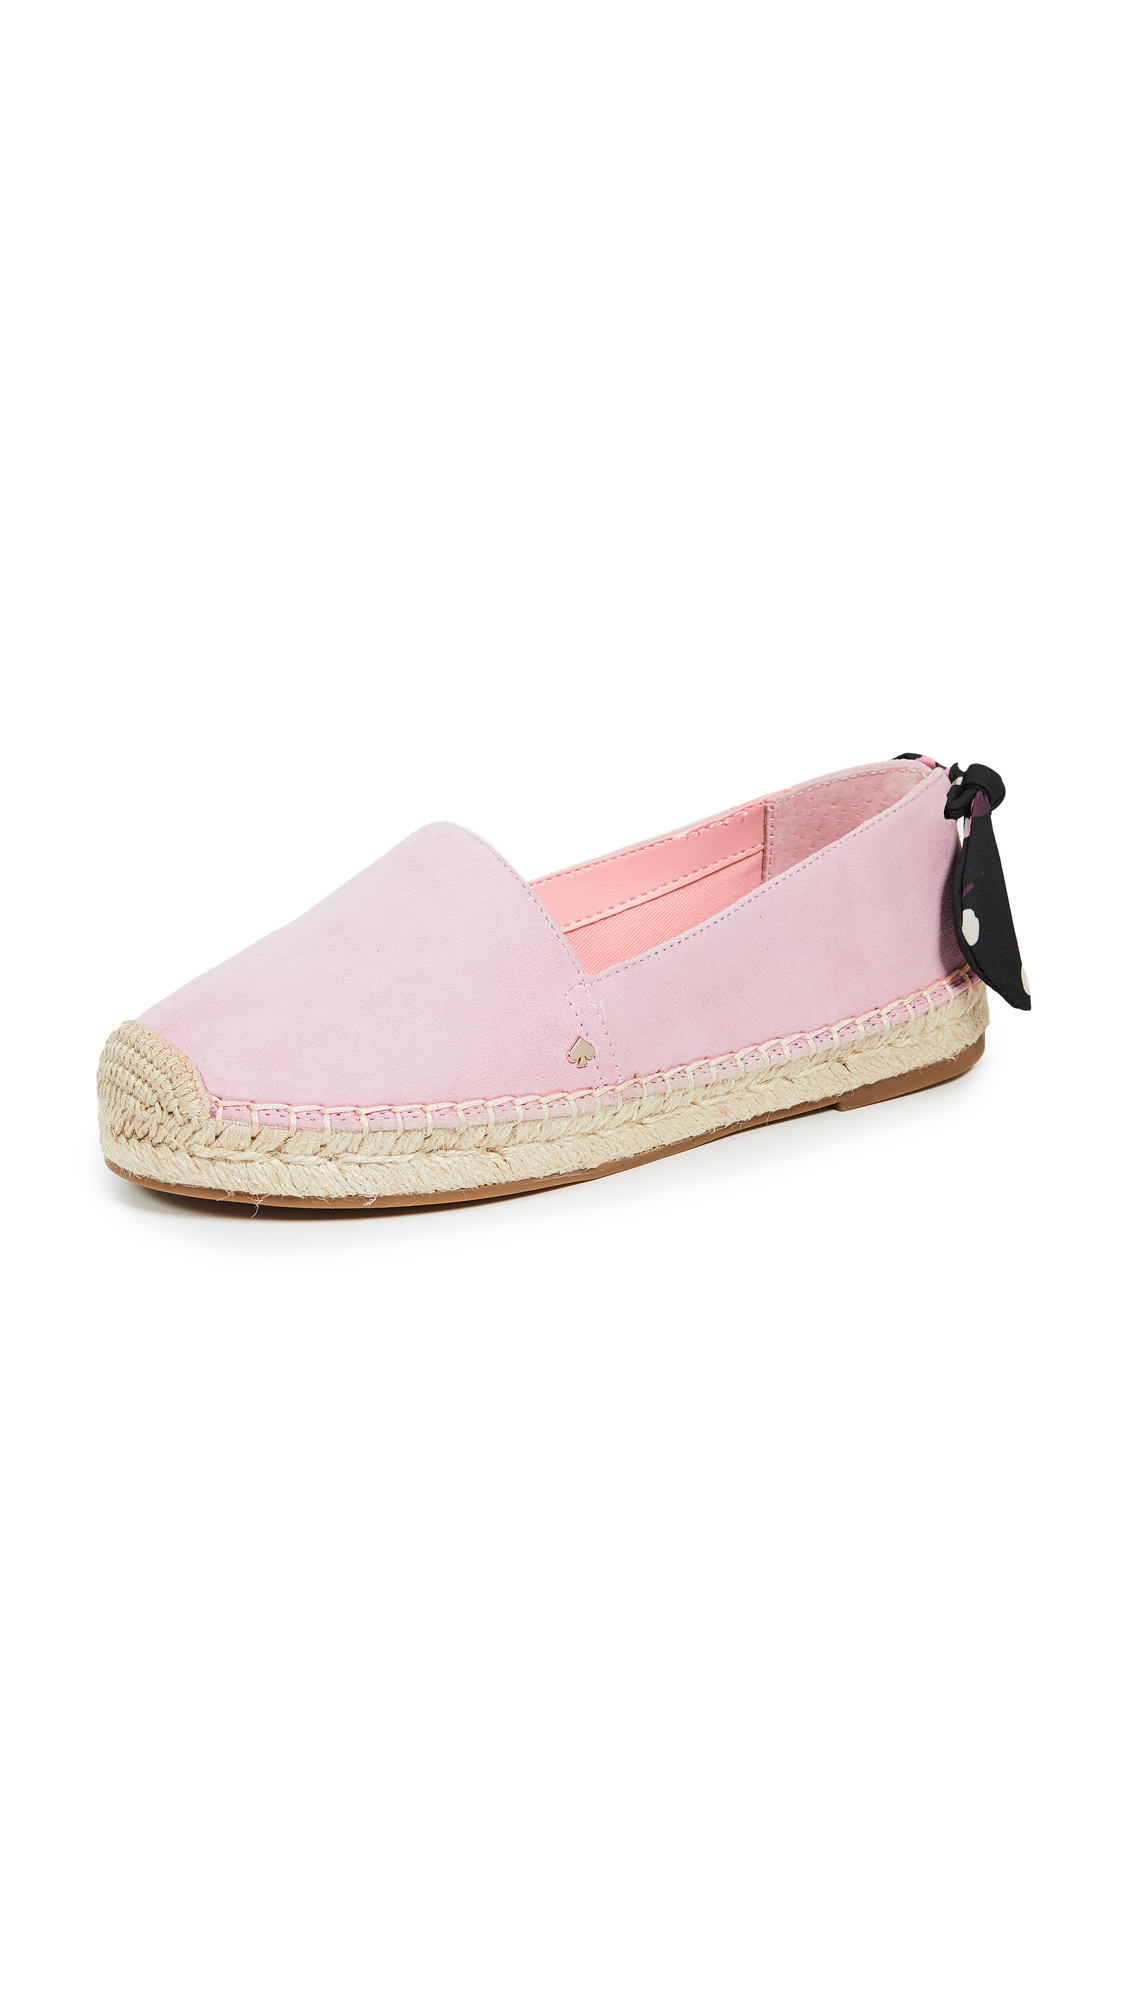 Kate Spade New York Grayson Espadrille Flats - Conch Shell